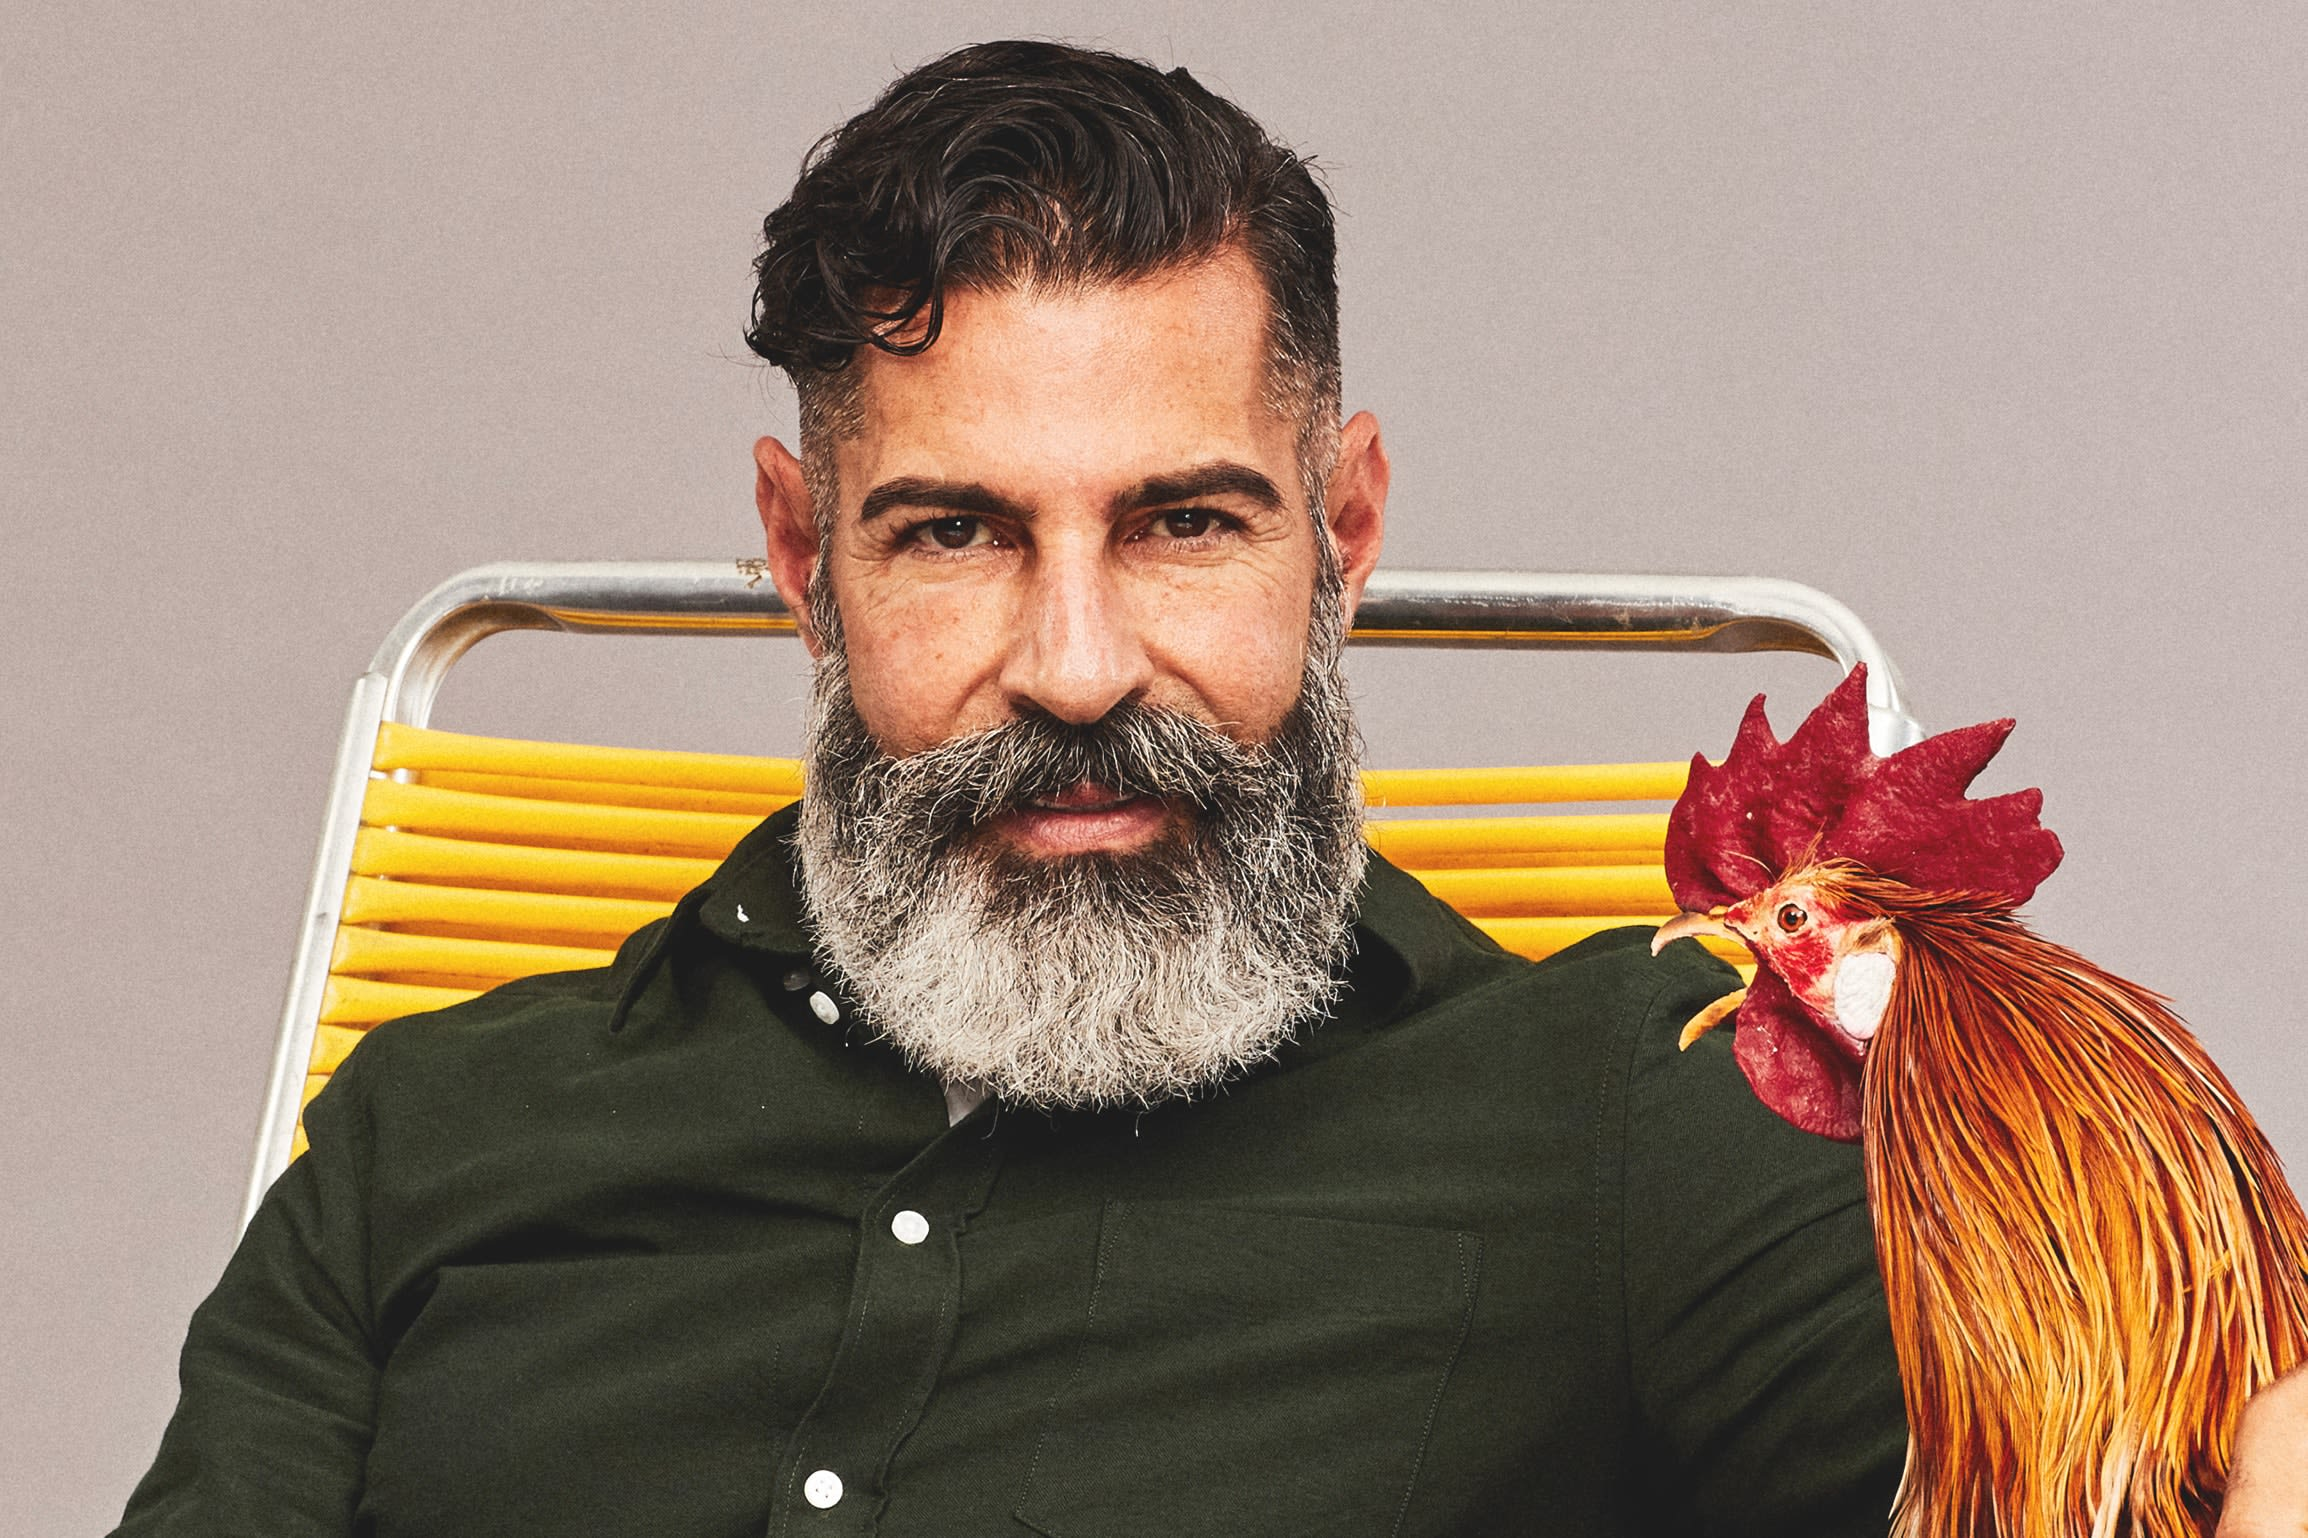 A bearded man seated holding a rooster.